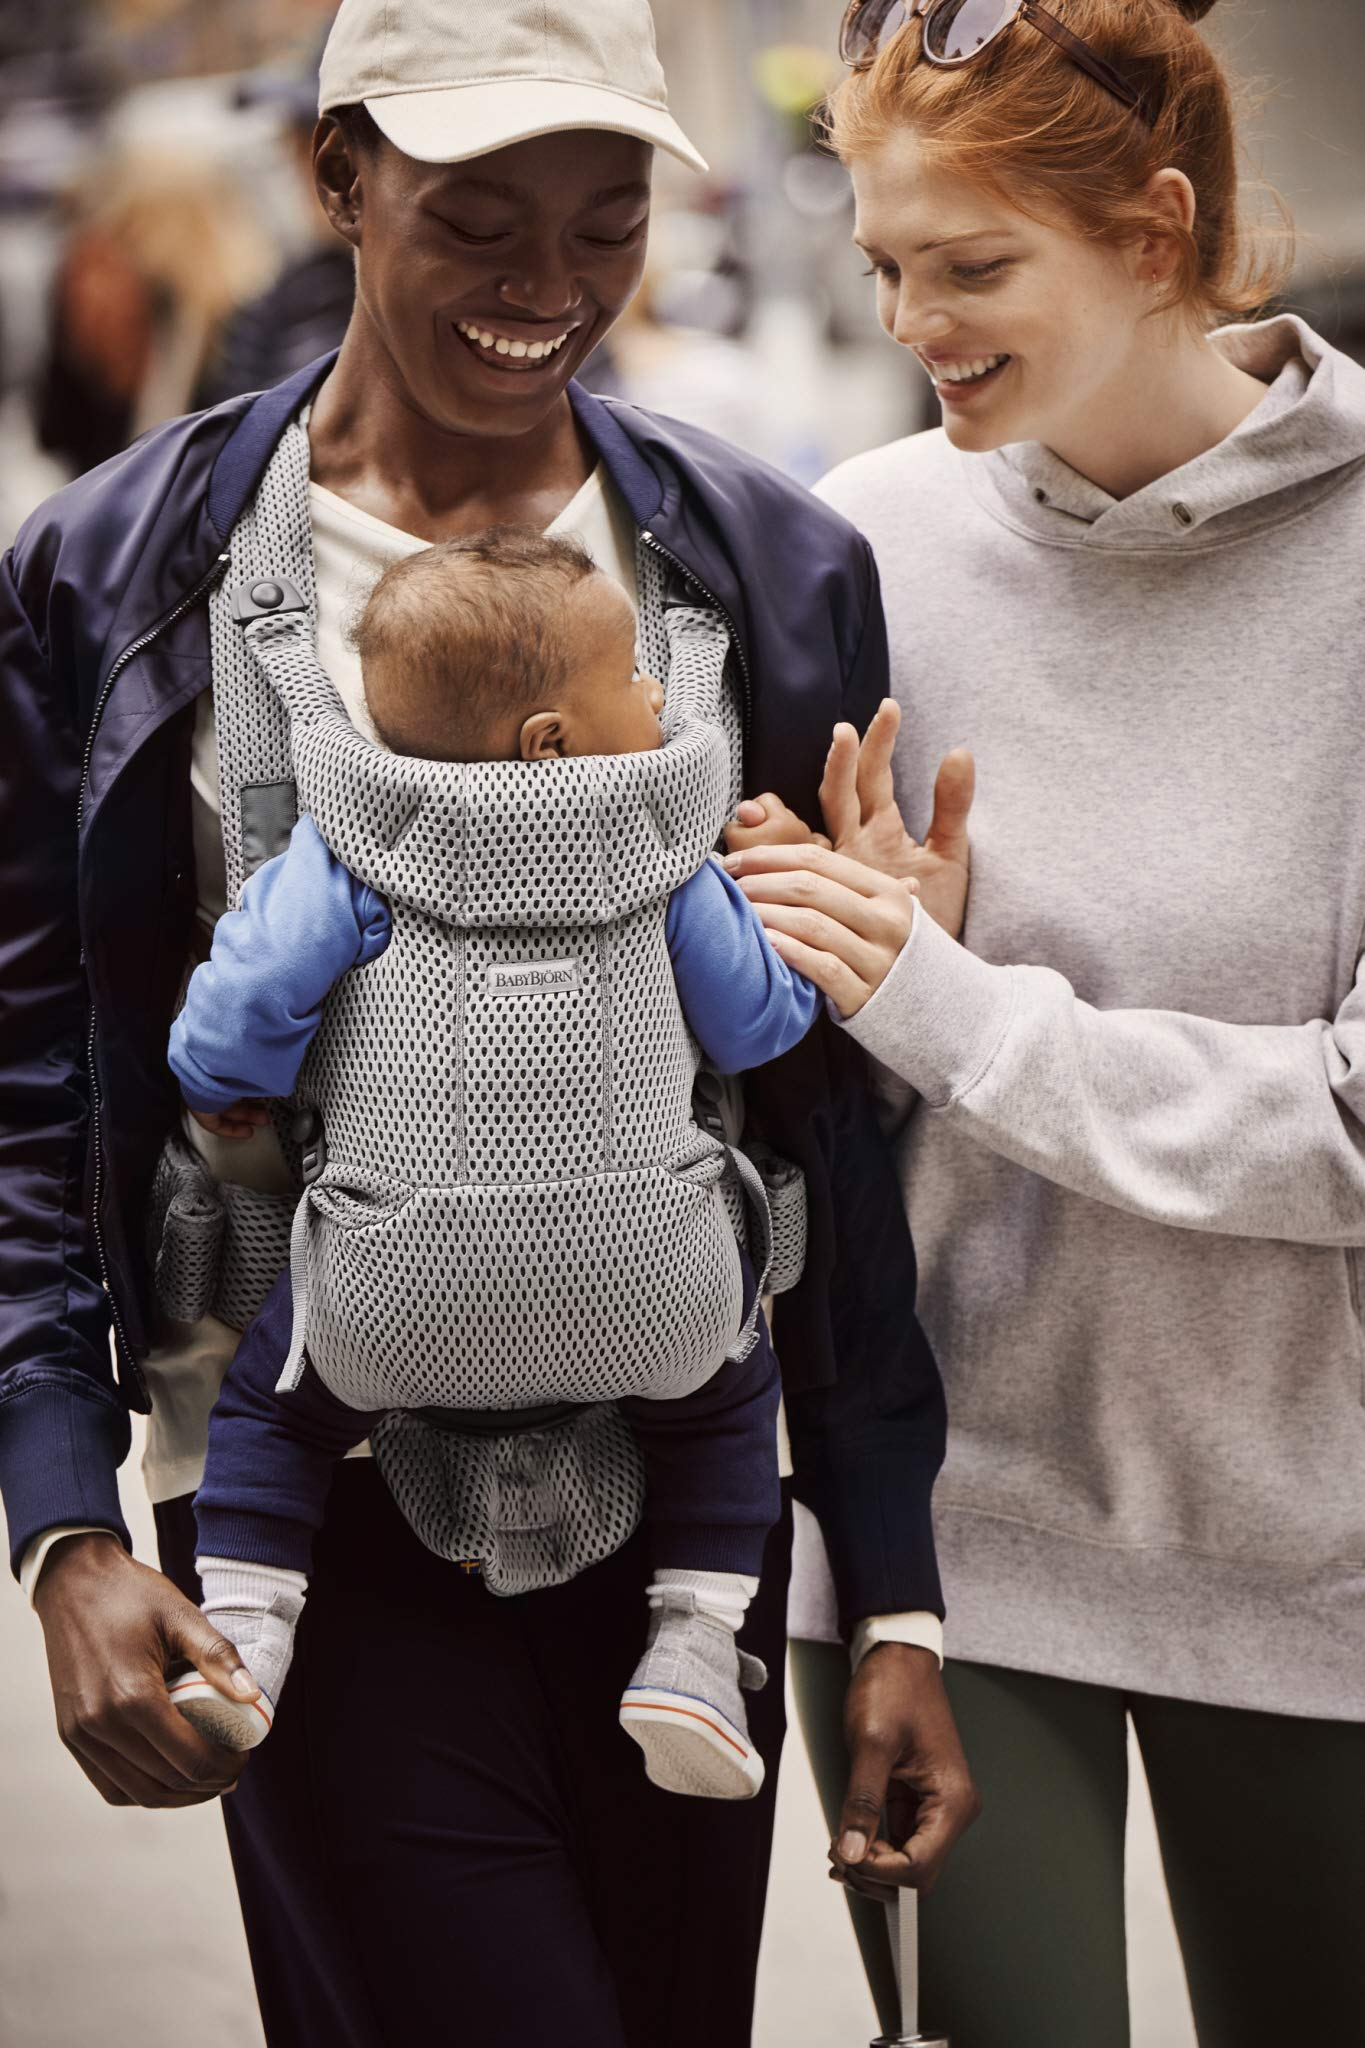 BABYBJÖRN Baby Carrier Move, 3D Mesh, Grey Baby Bjorn Excellent comfort with built-in back support and waist belt Easy to put on and take off Soft and airy design in cool 3D mesh 6